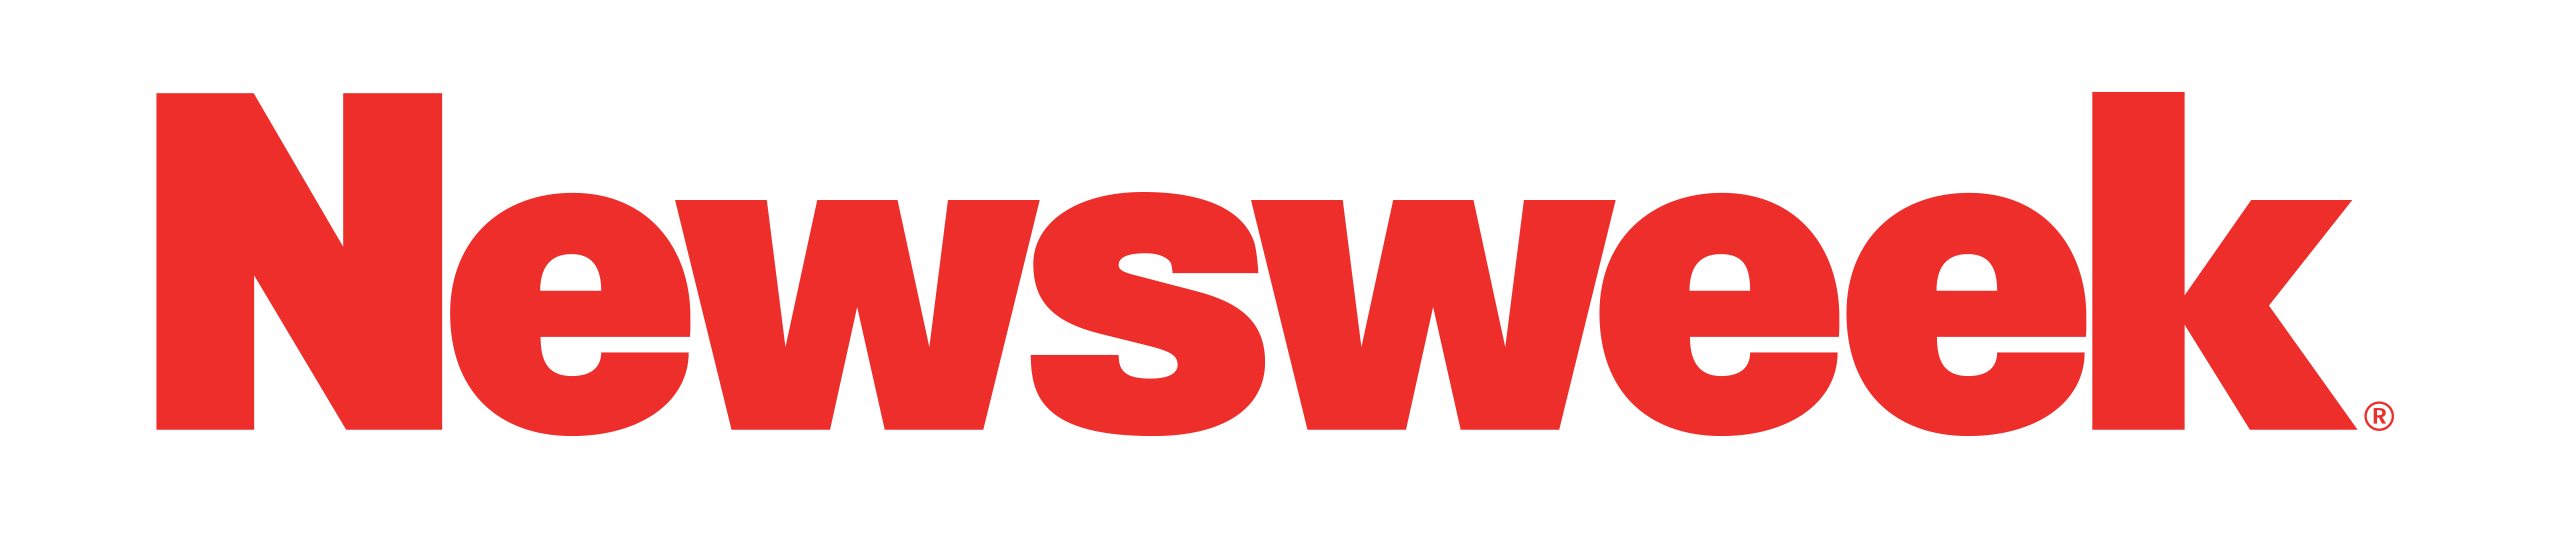 NewsweekLogo_Red